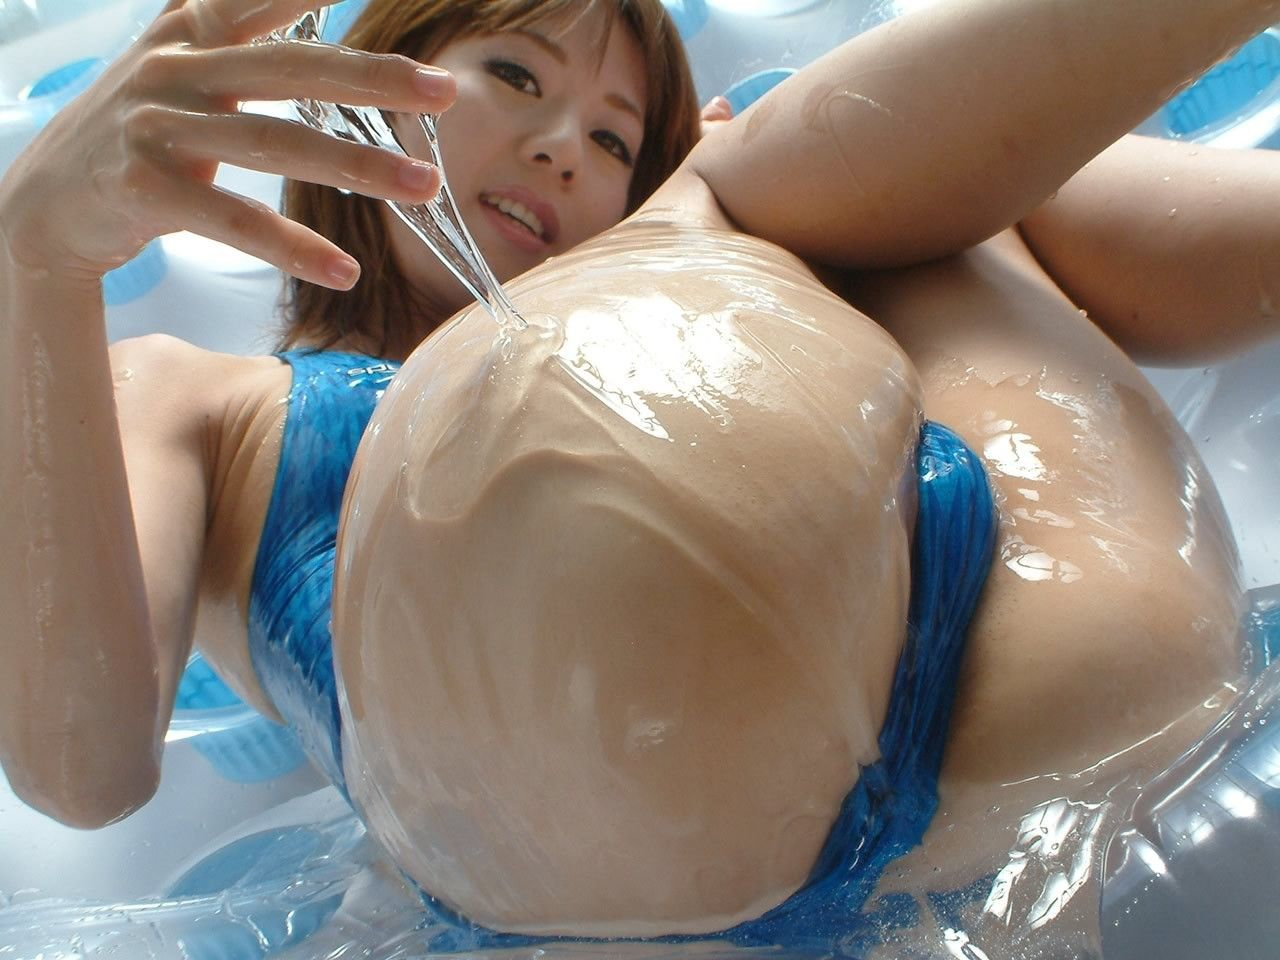 Naked boobs on slime smut pictures